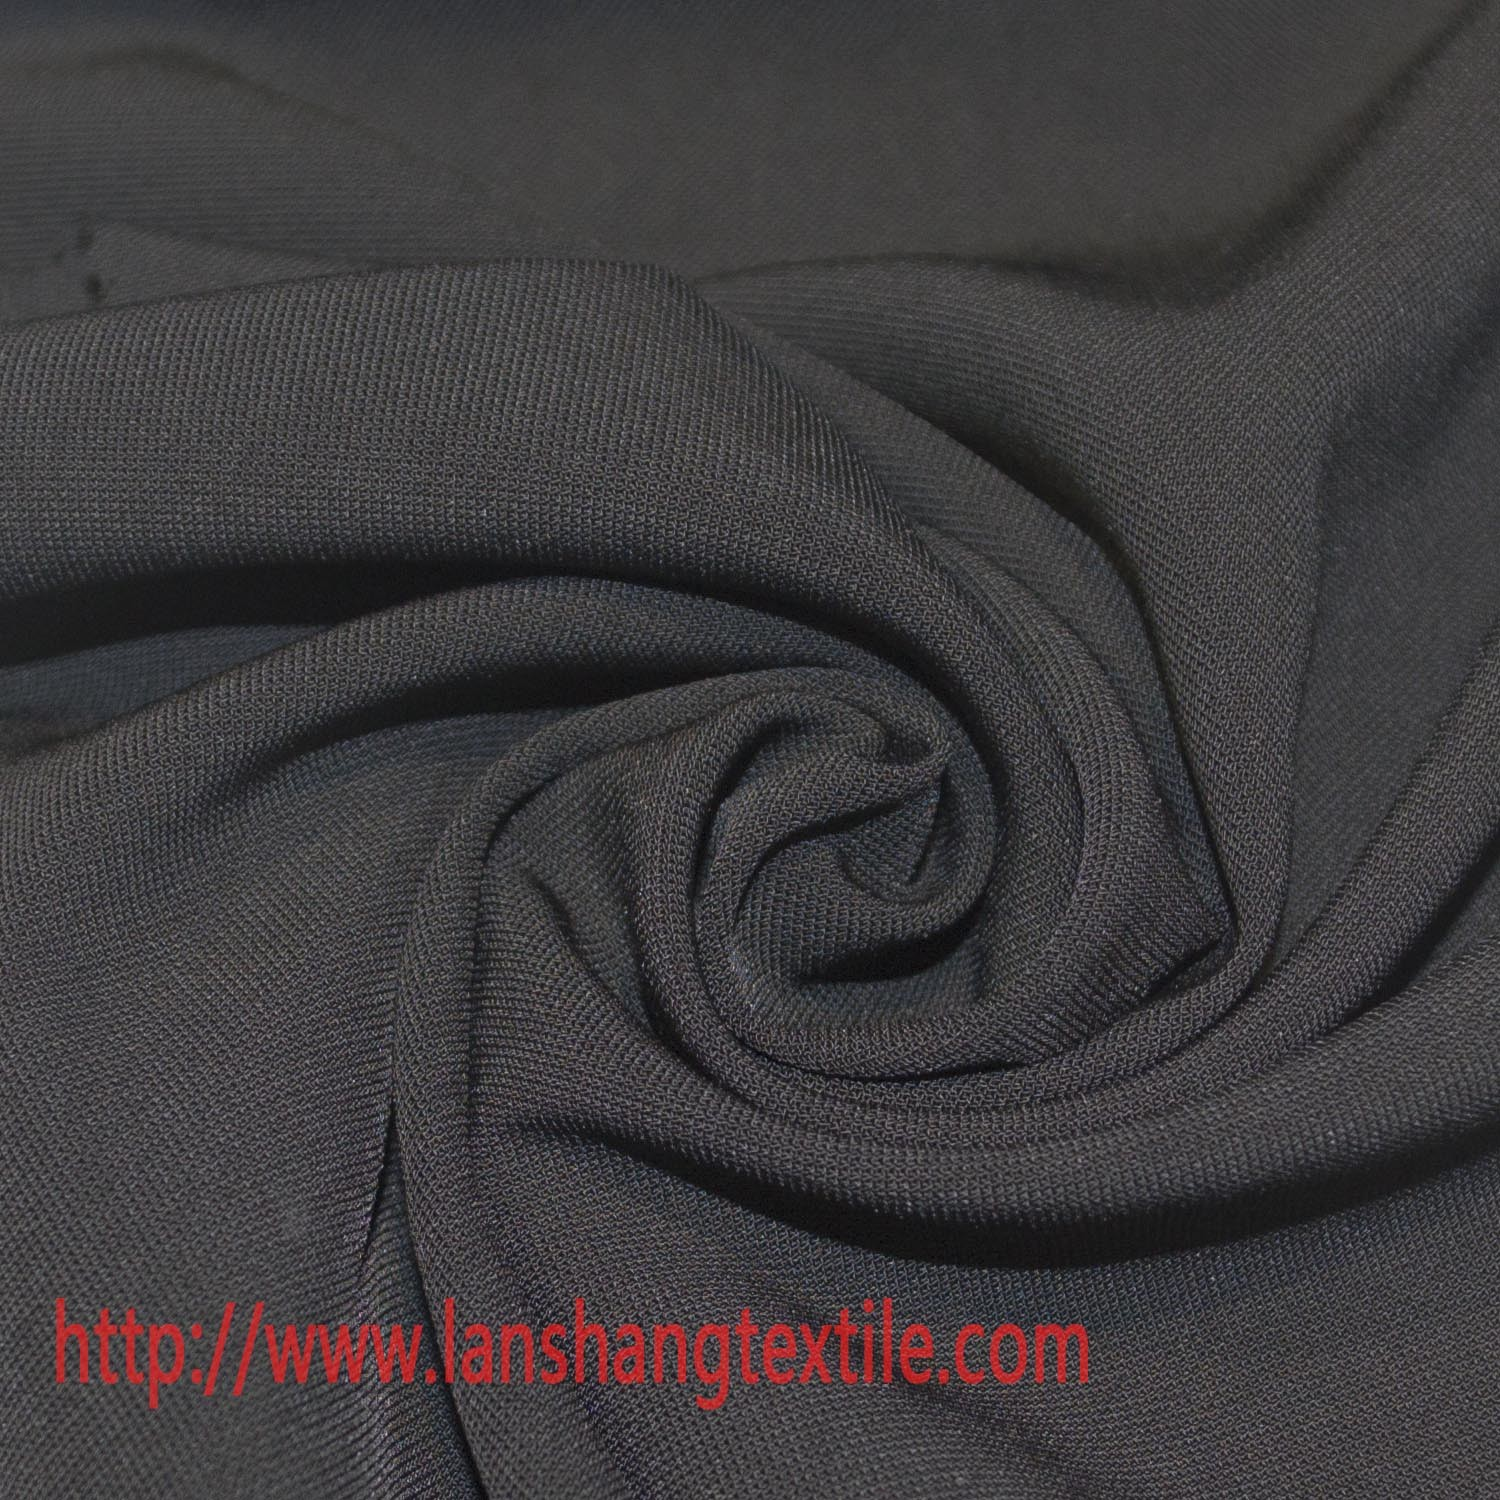 Plain Dyed Chemical Woven Fabric Polyester Fabric for Garment Shirt Skirt Home Textile